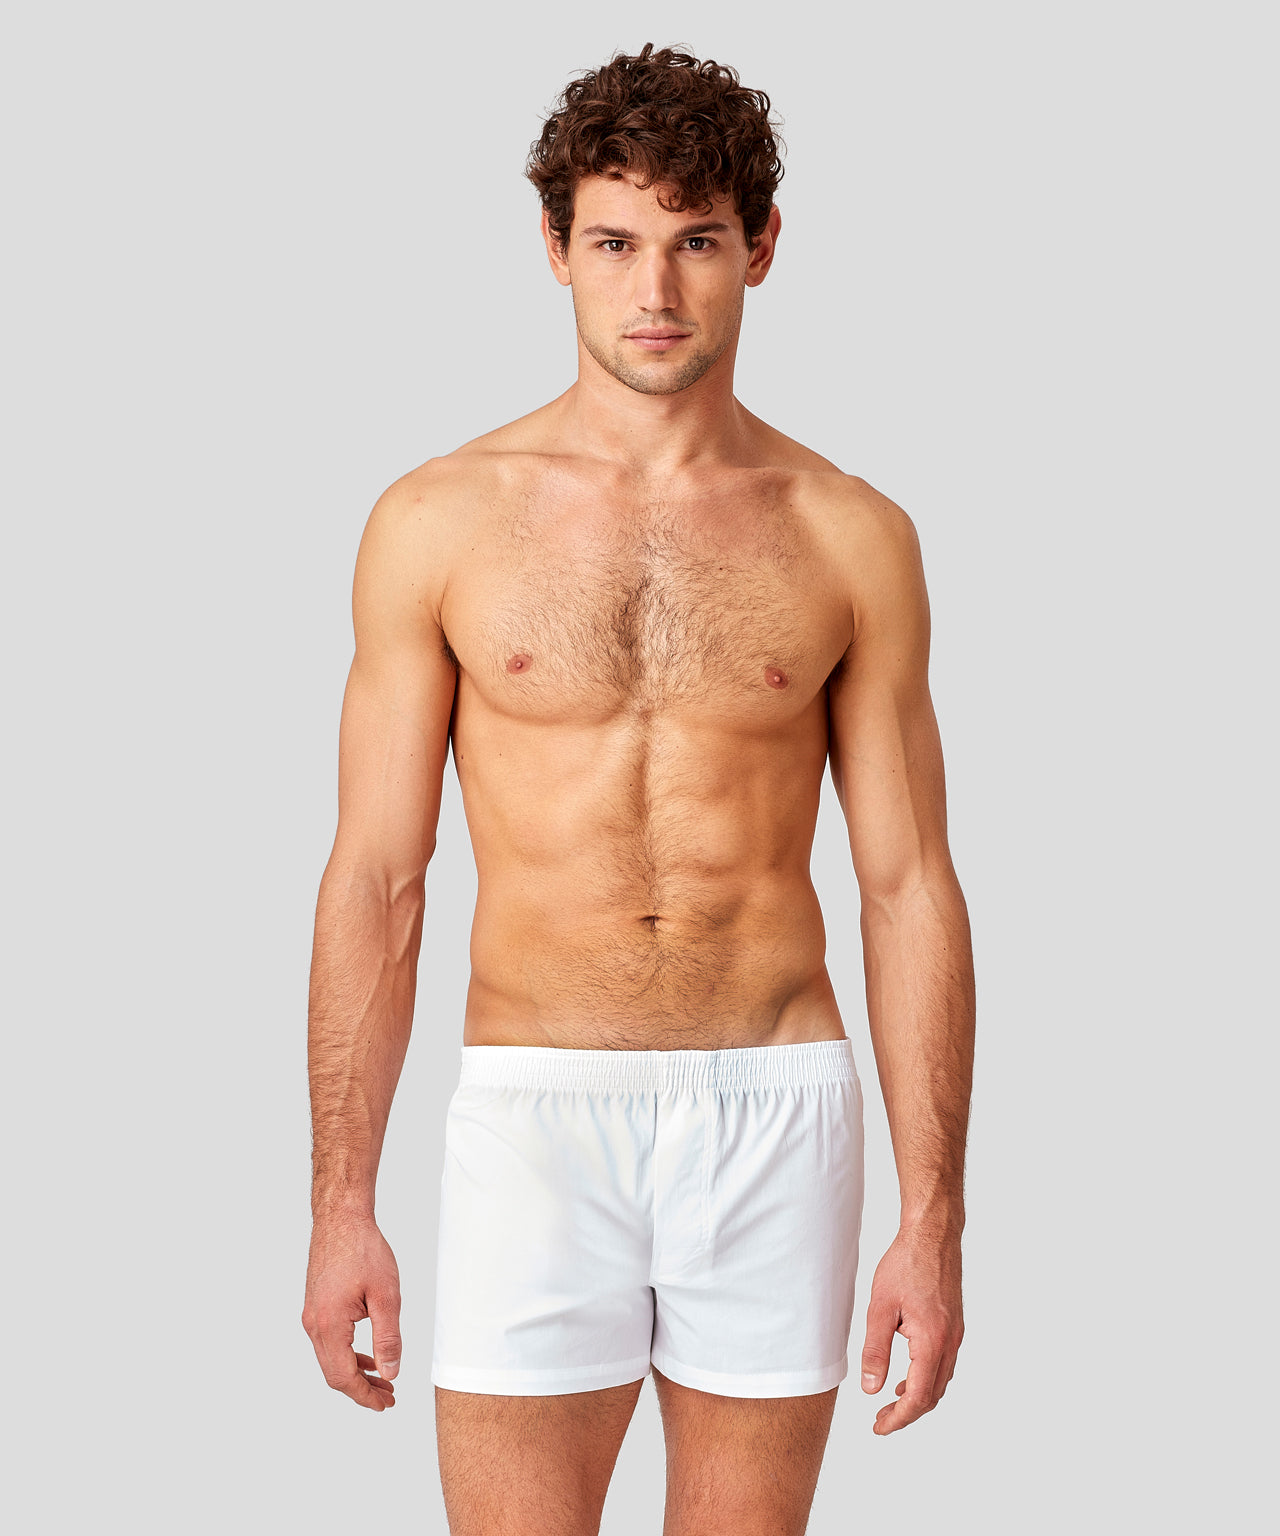 747 Boxer Shorts Discovery Kit - white